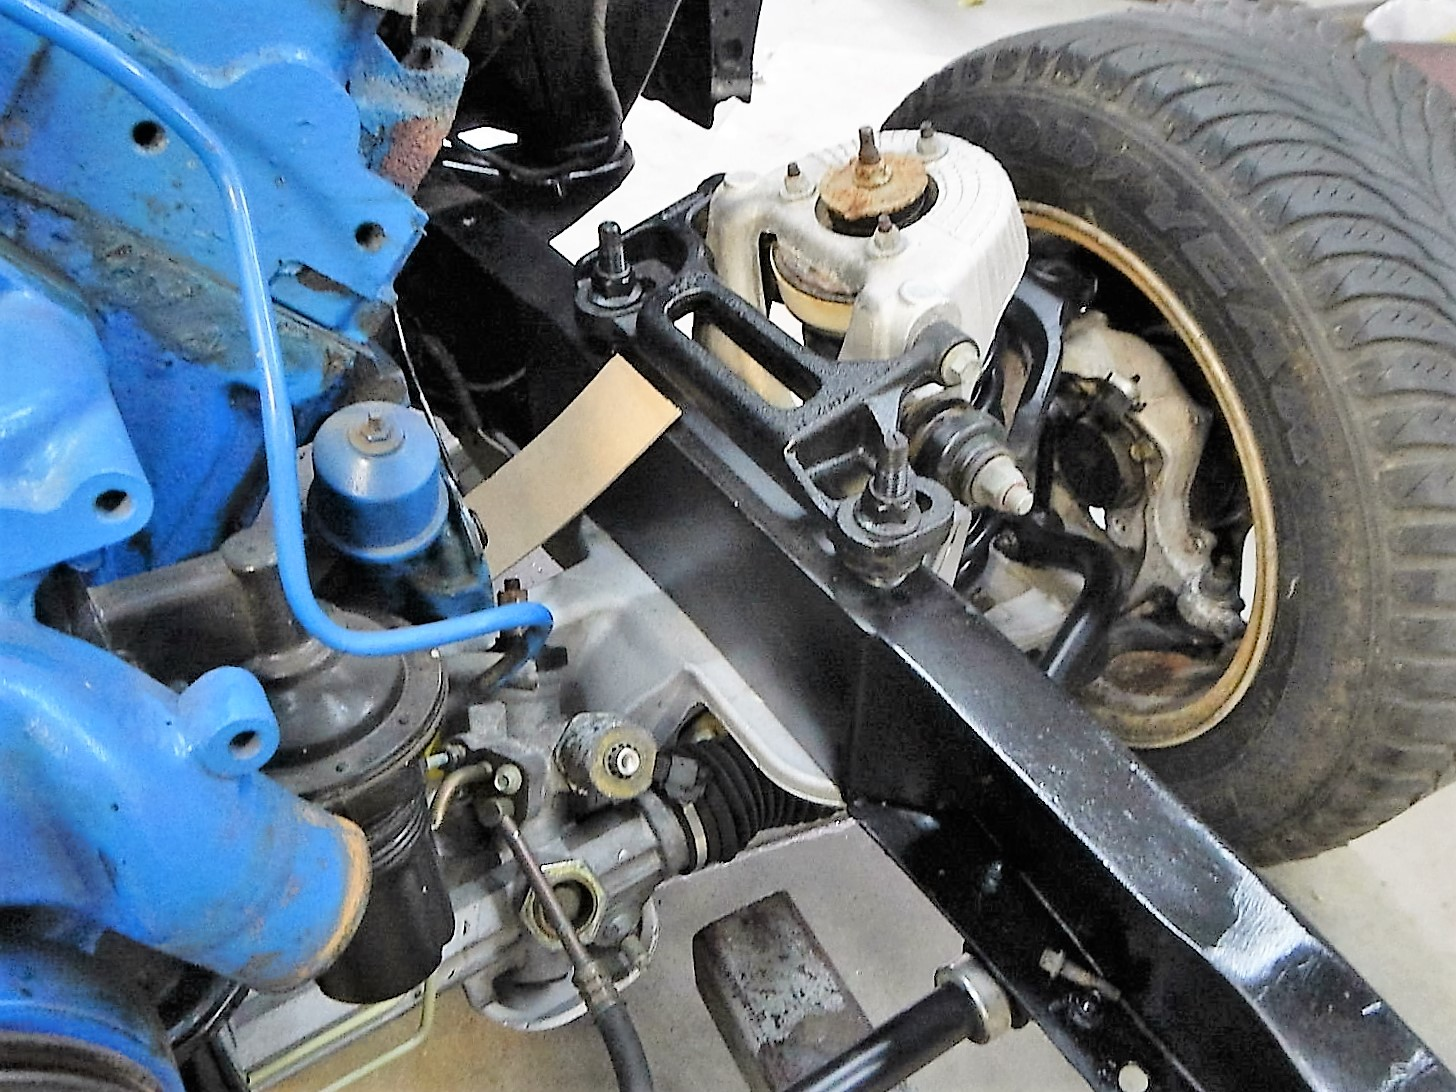 1968 Ford F-100 Front End Swap - Mercury Crown Vic  088.jpg